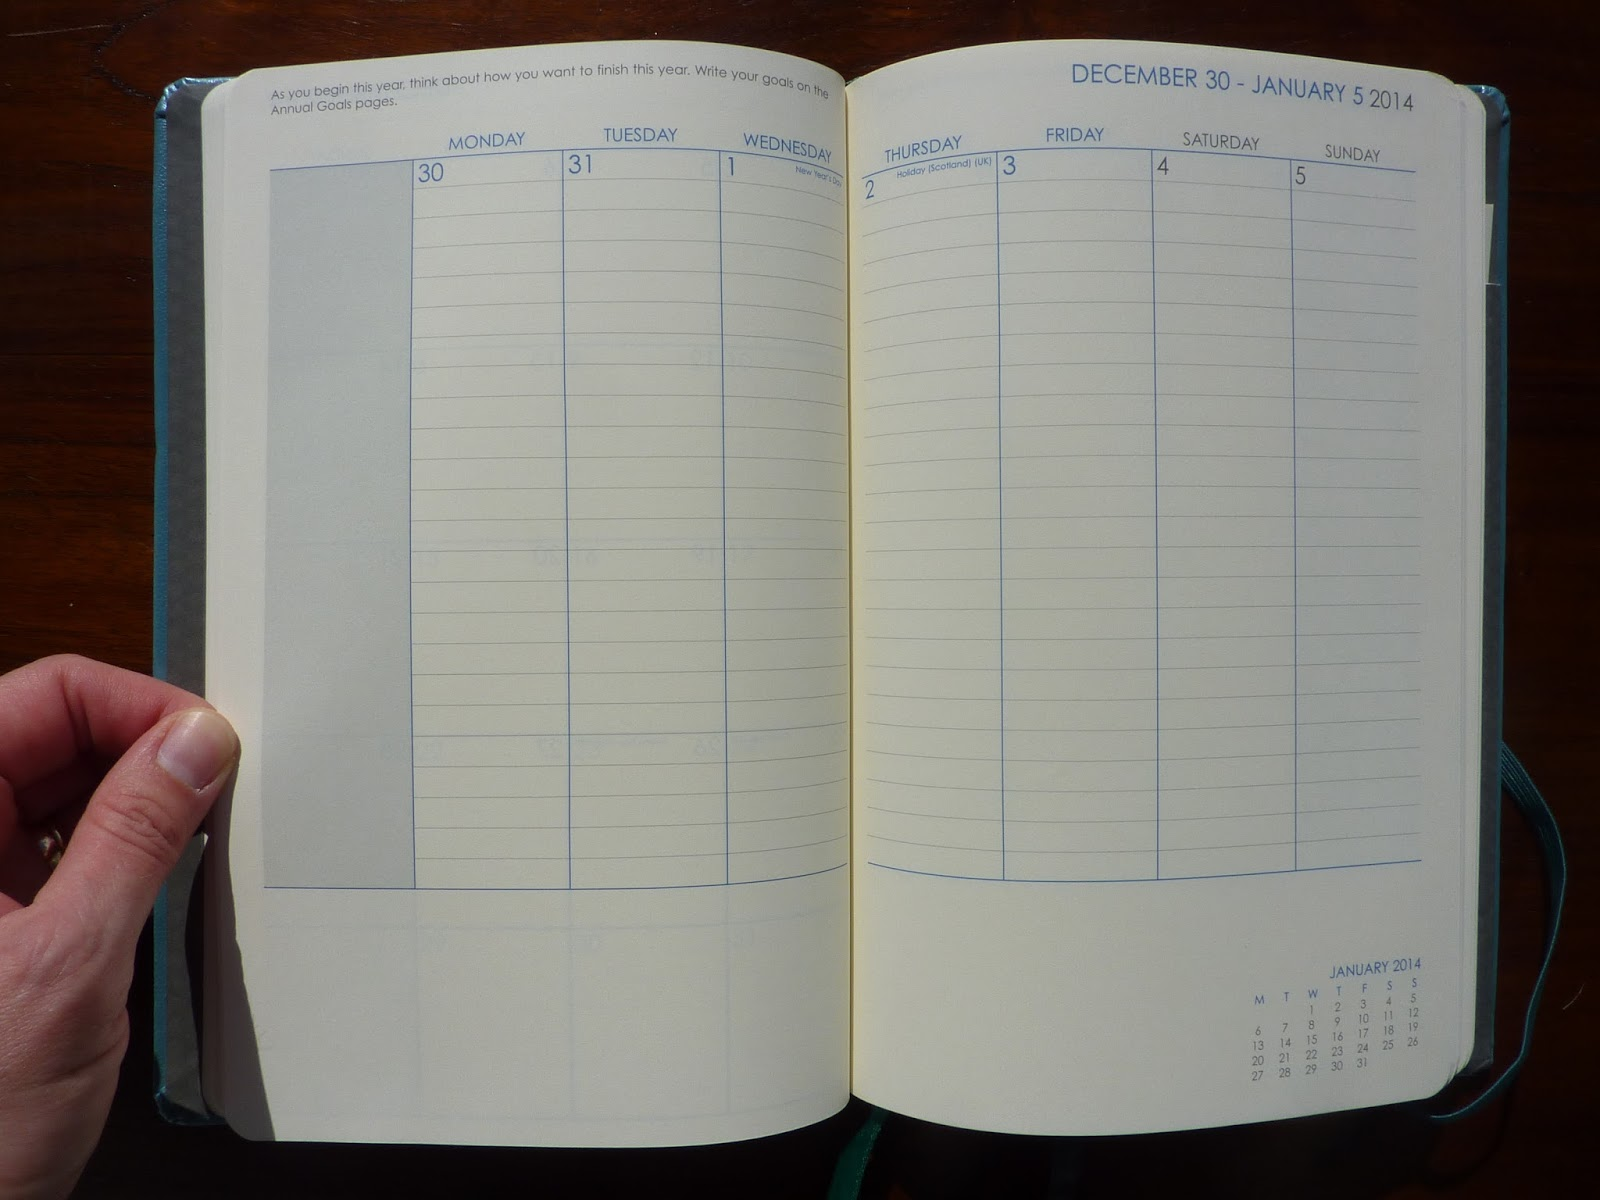 Week Calendars By Month You Can Write In | Calendar Template 2016